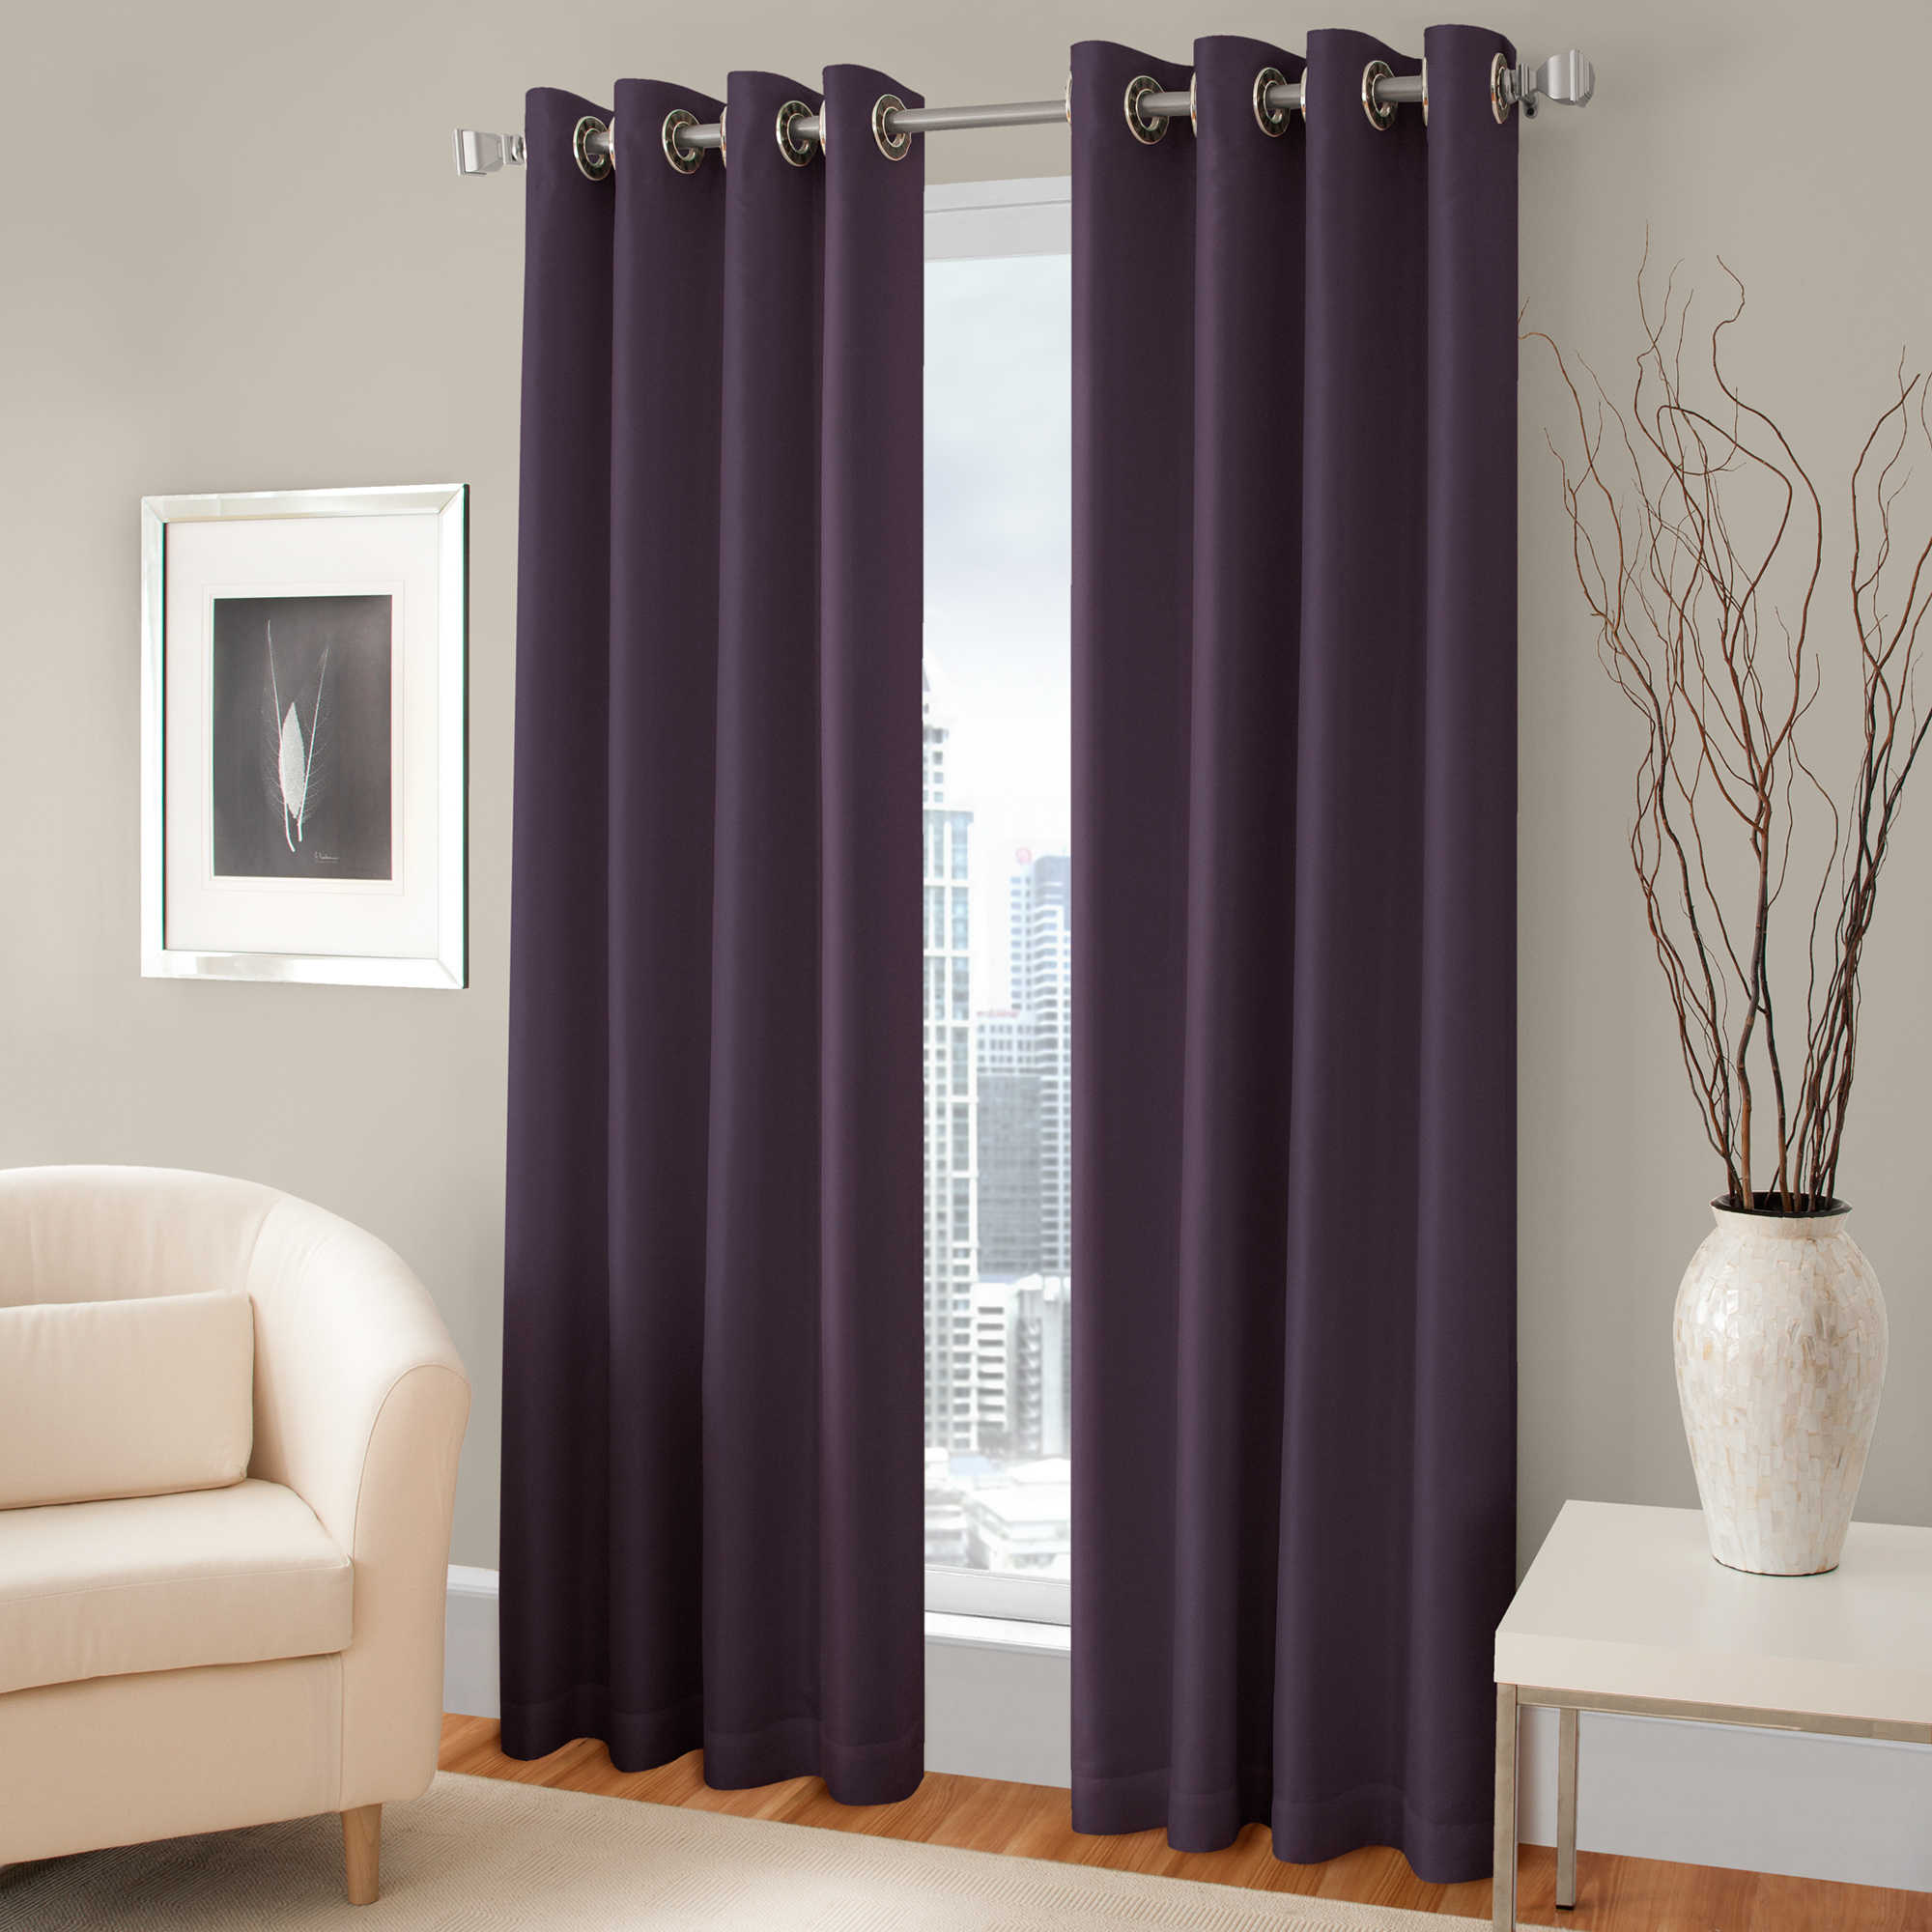 design bedroom best photos of curtains living curtain room roman style the